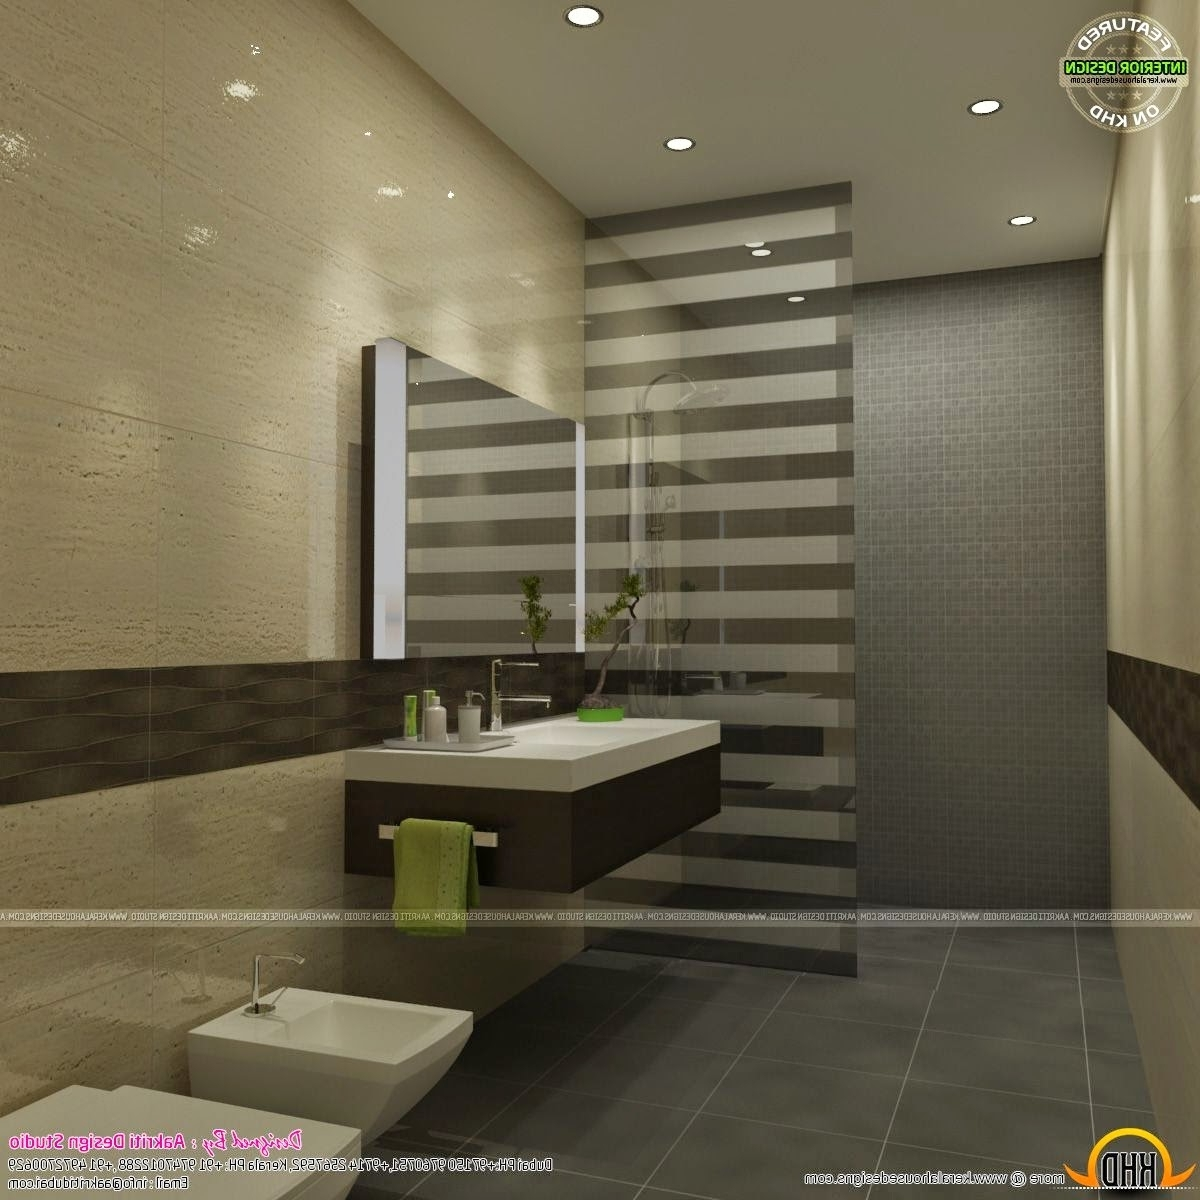 Awesome Interiors Of Living, Kitchen And Bathroom Kerala Kerala Home Design Interior Bathroom